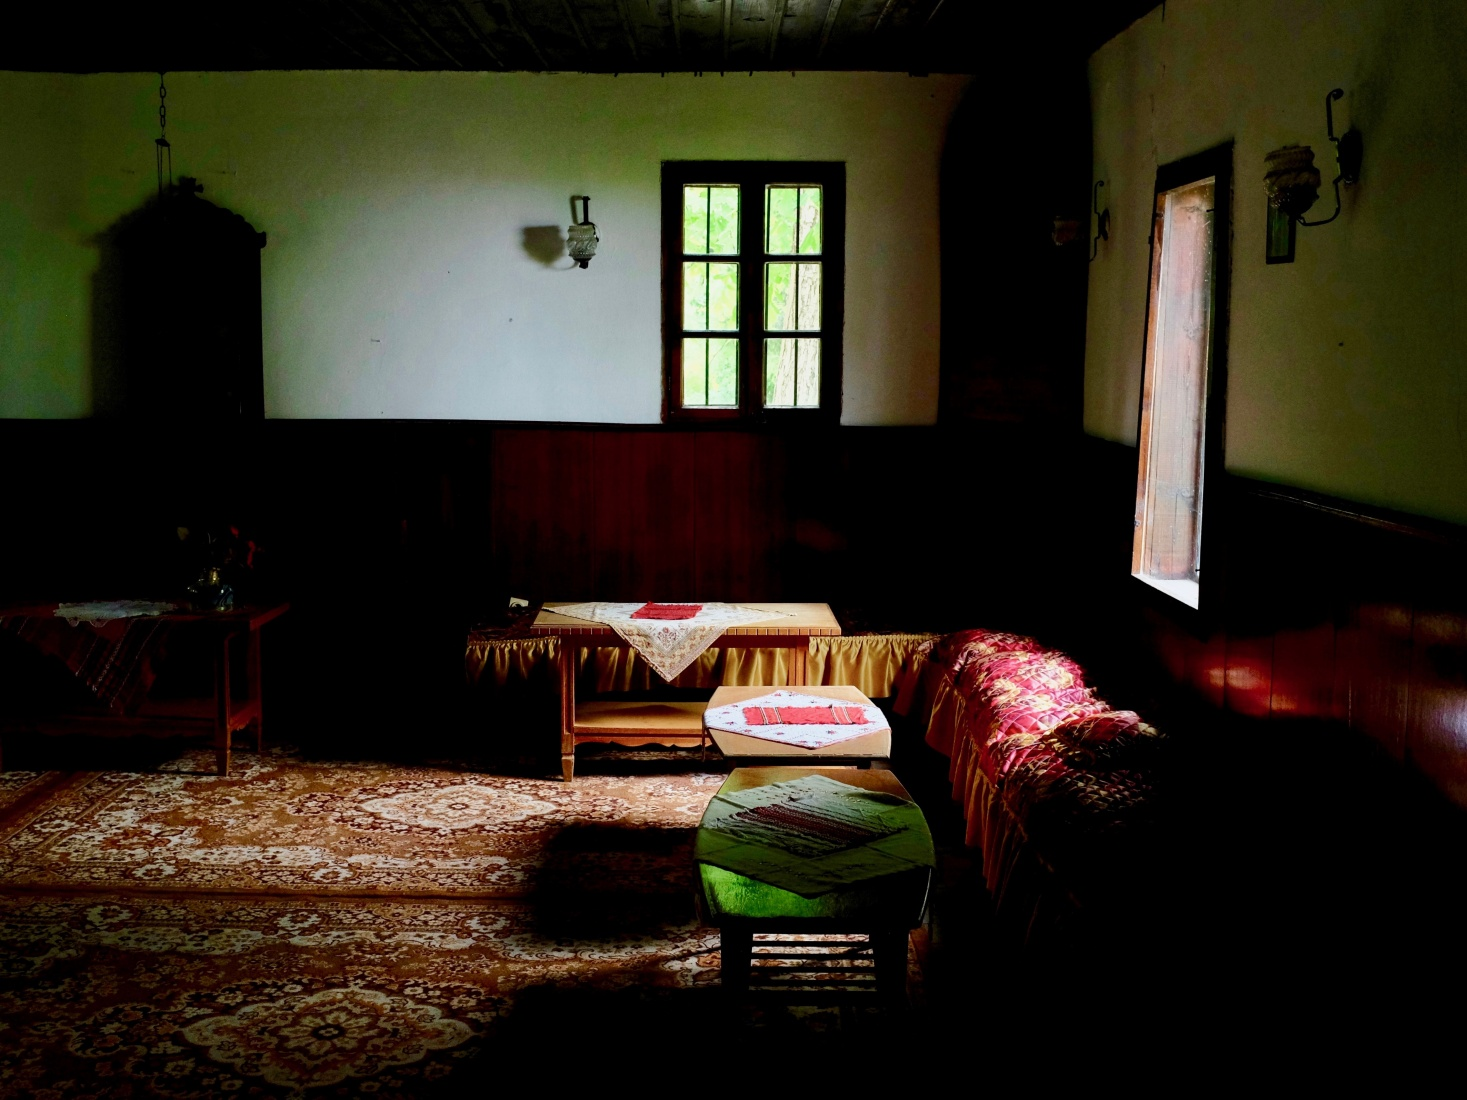 A contemplation room in the Cherepish monastery in northern Bulgaria.